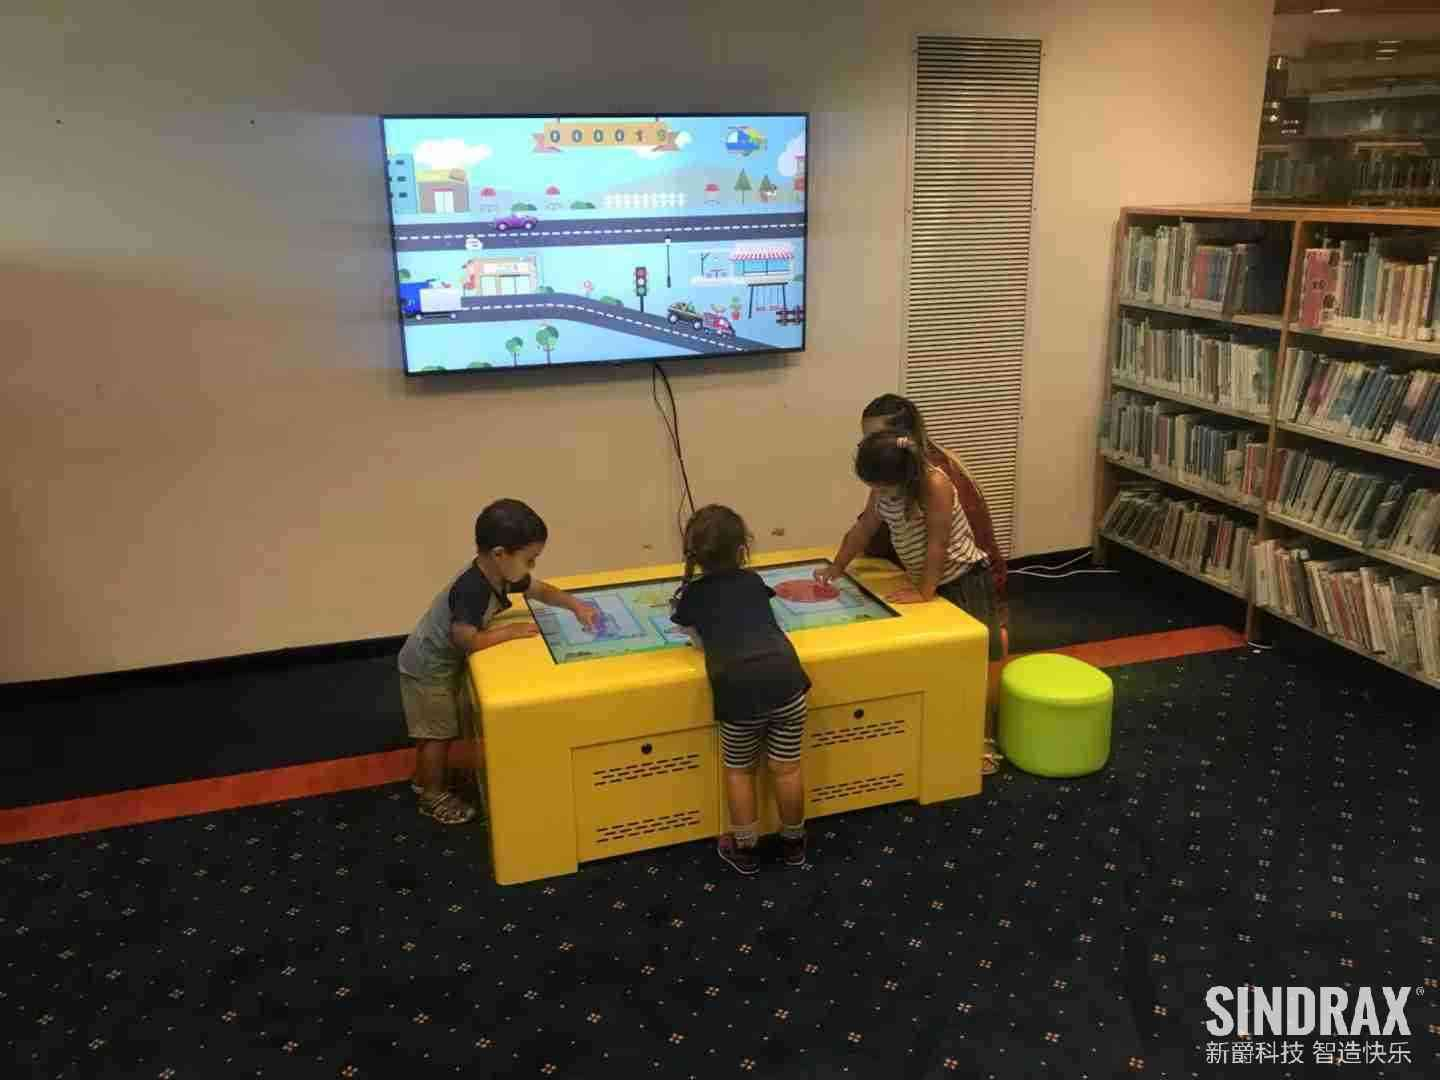 Israel Library interactive game